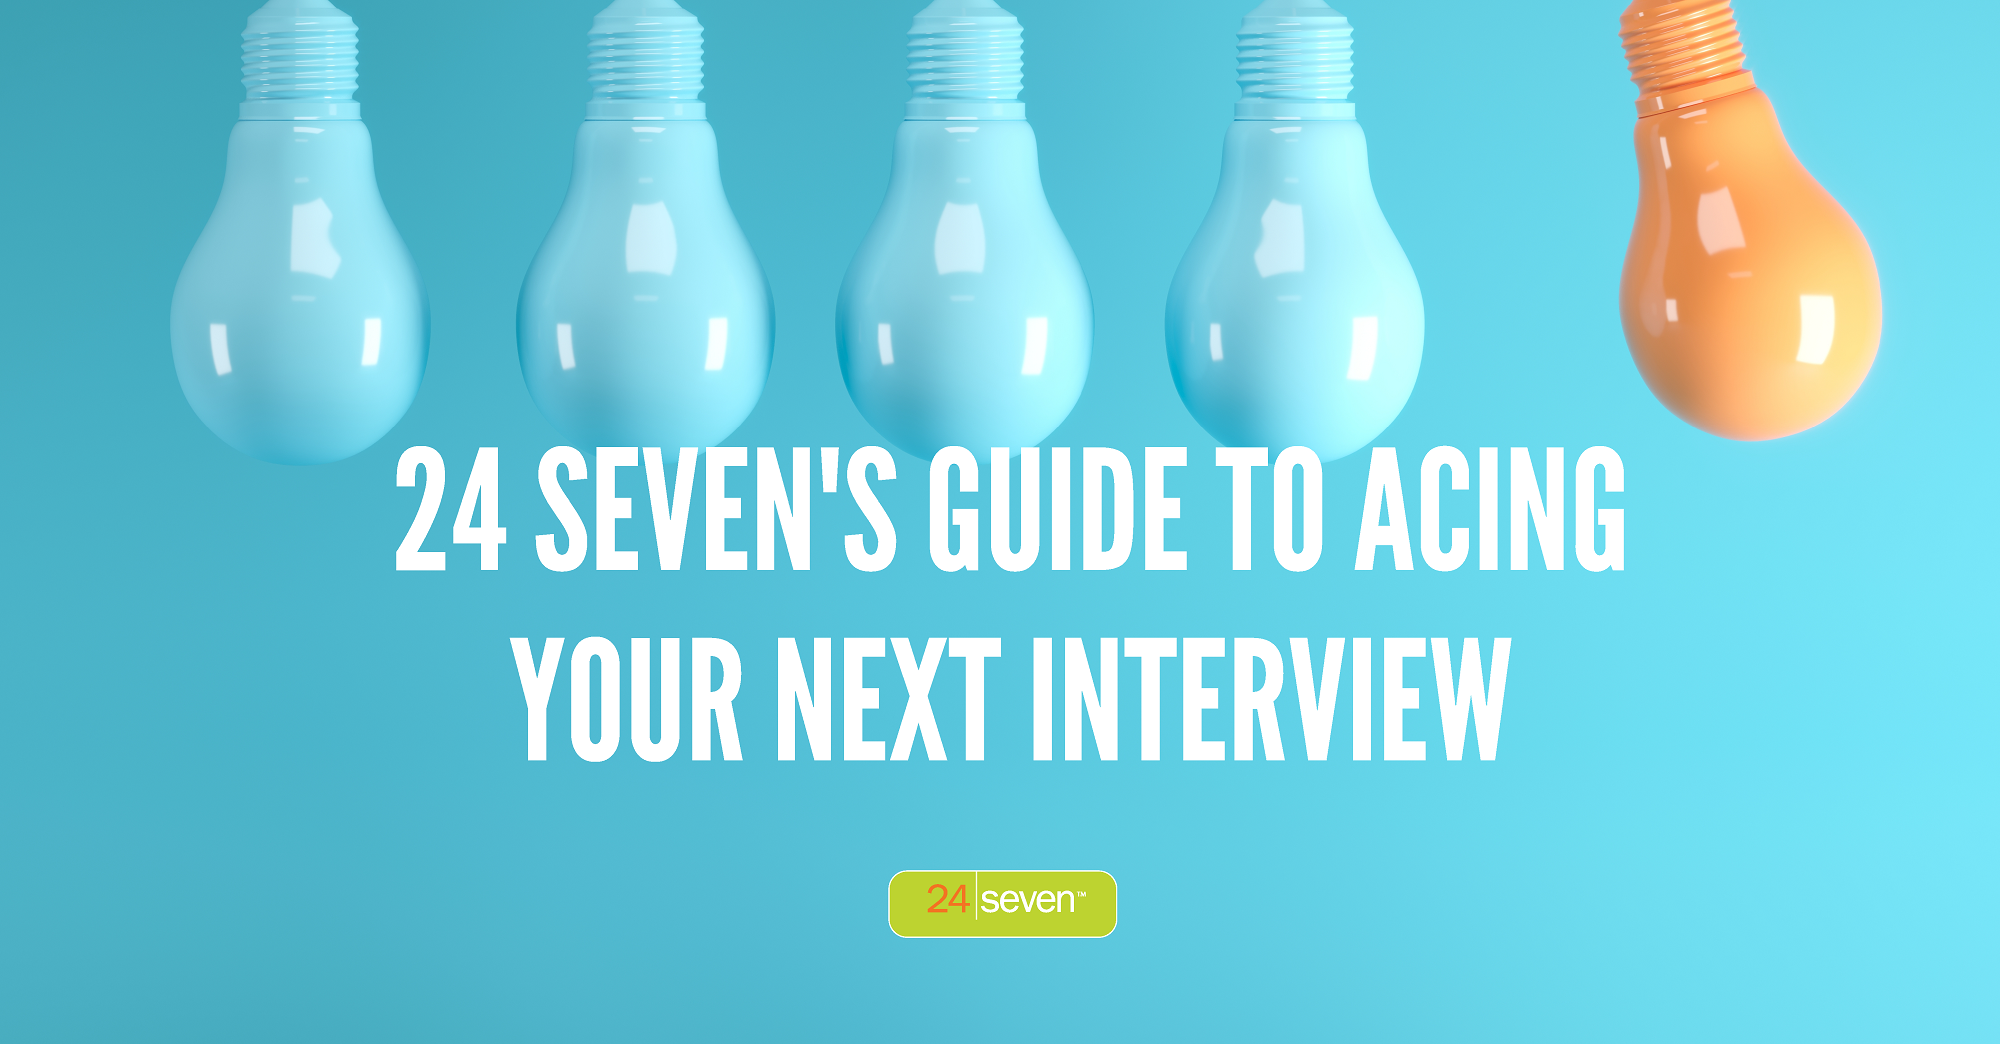 24 Sevens Guide to Acing Your Next interview-1